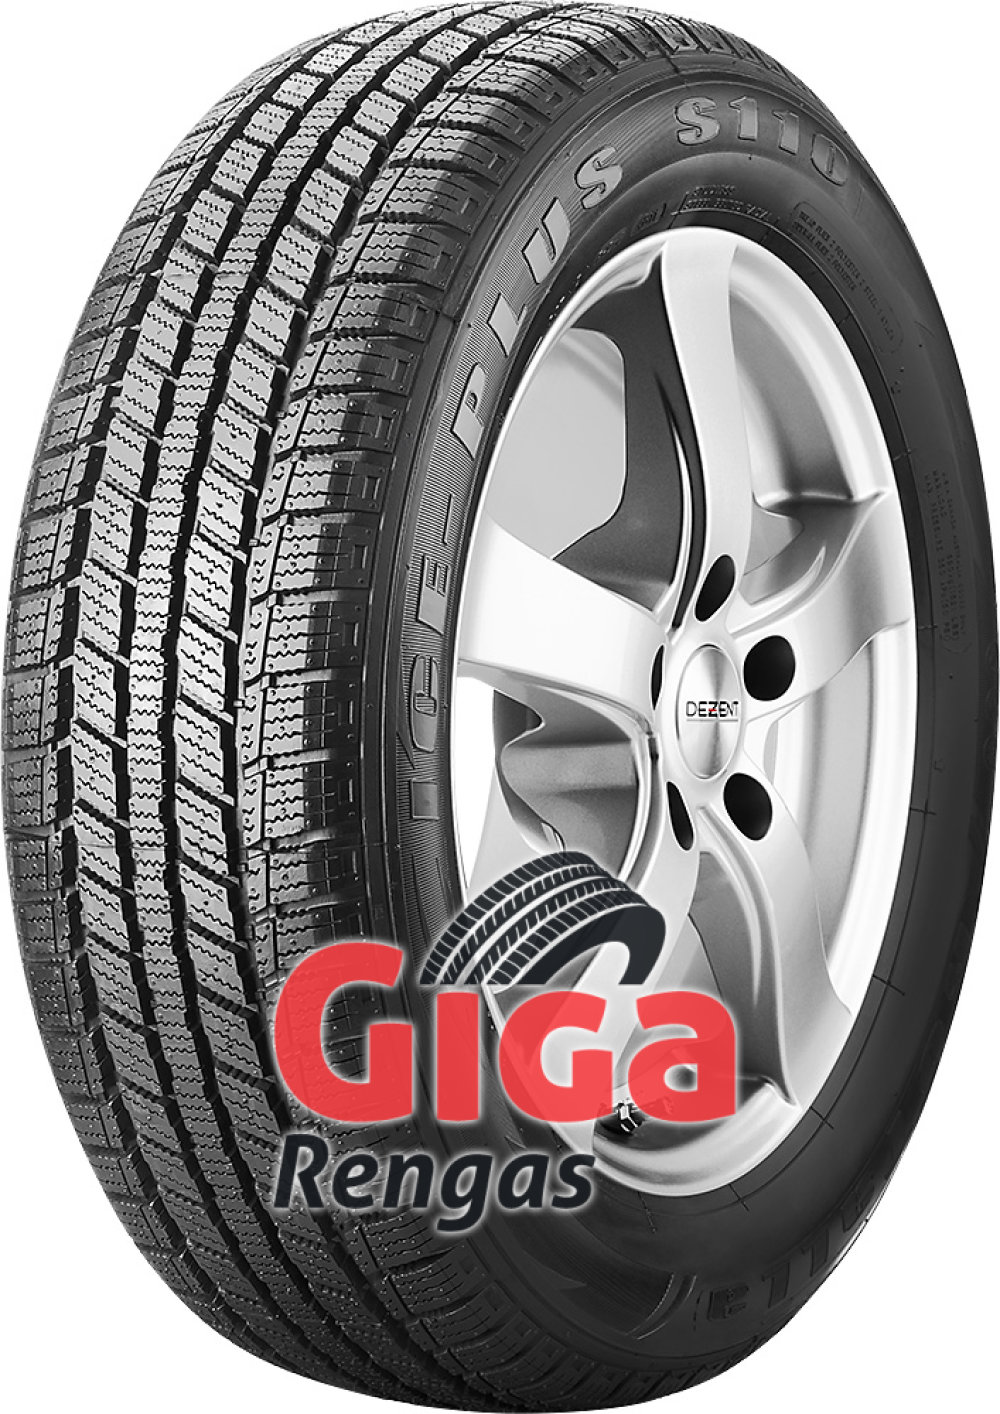 Rotalla Ice-Plus S110 ( 215/60 R16C 103/101R )